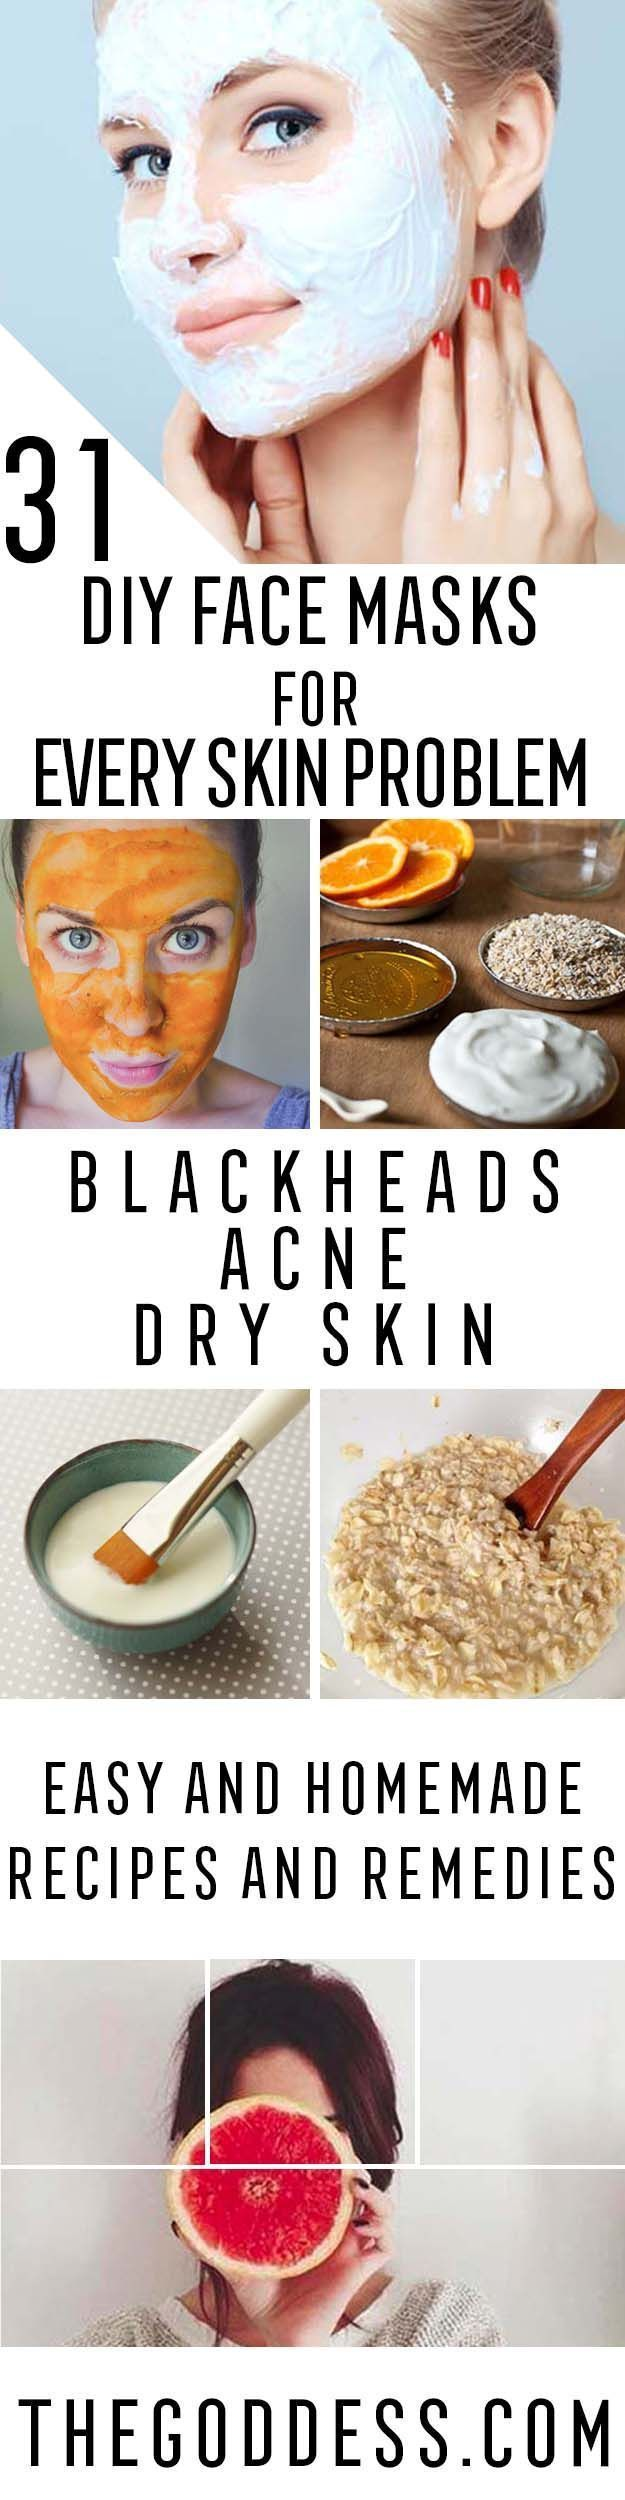 DIY Skin Care Recipes : DIY Face Masks for Every Skin Problem  Easy Homemade Face Masks For Blackheads